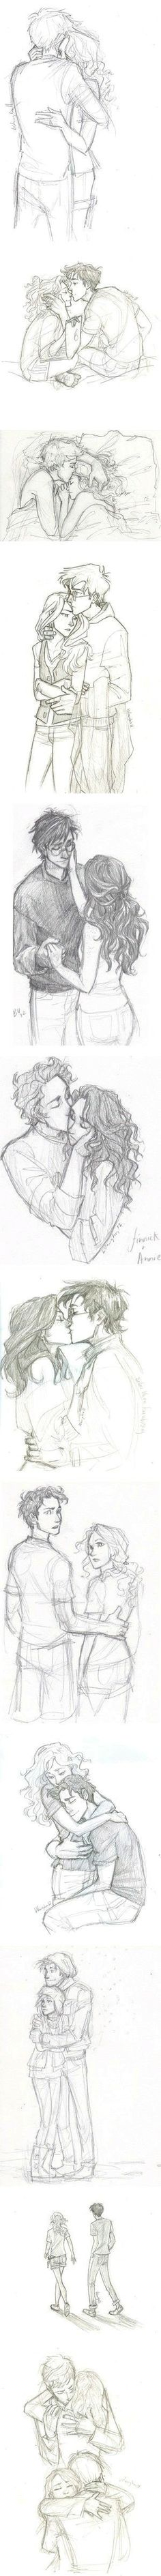 I love all of the James and Lily pictures! They're the cutest couple in man/book-kind sketching ideas